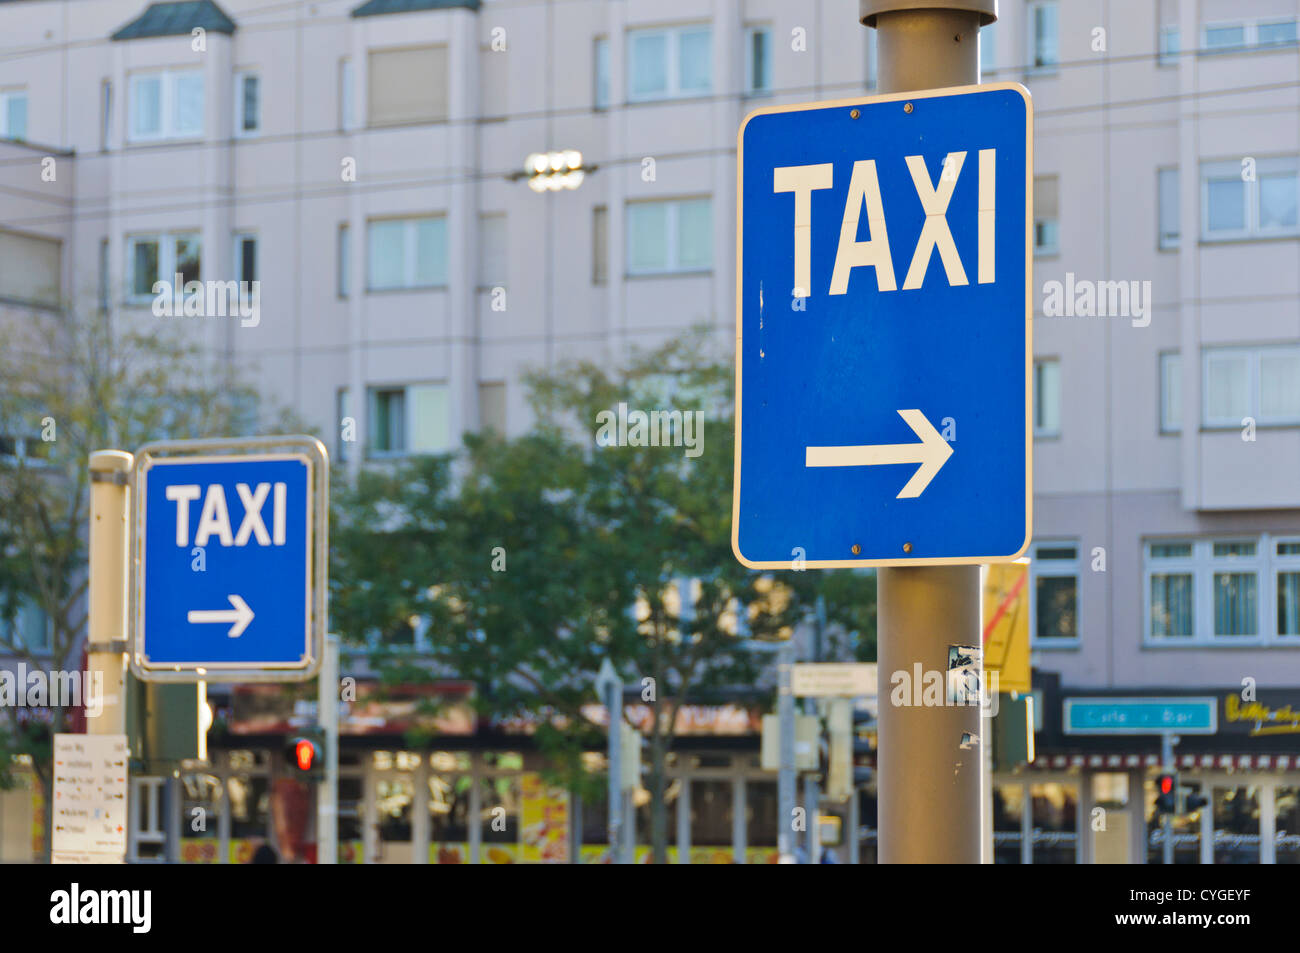 Two TAXI signs - Stock Image